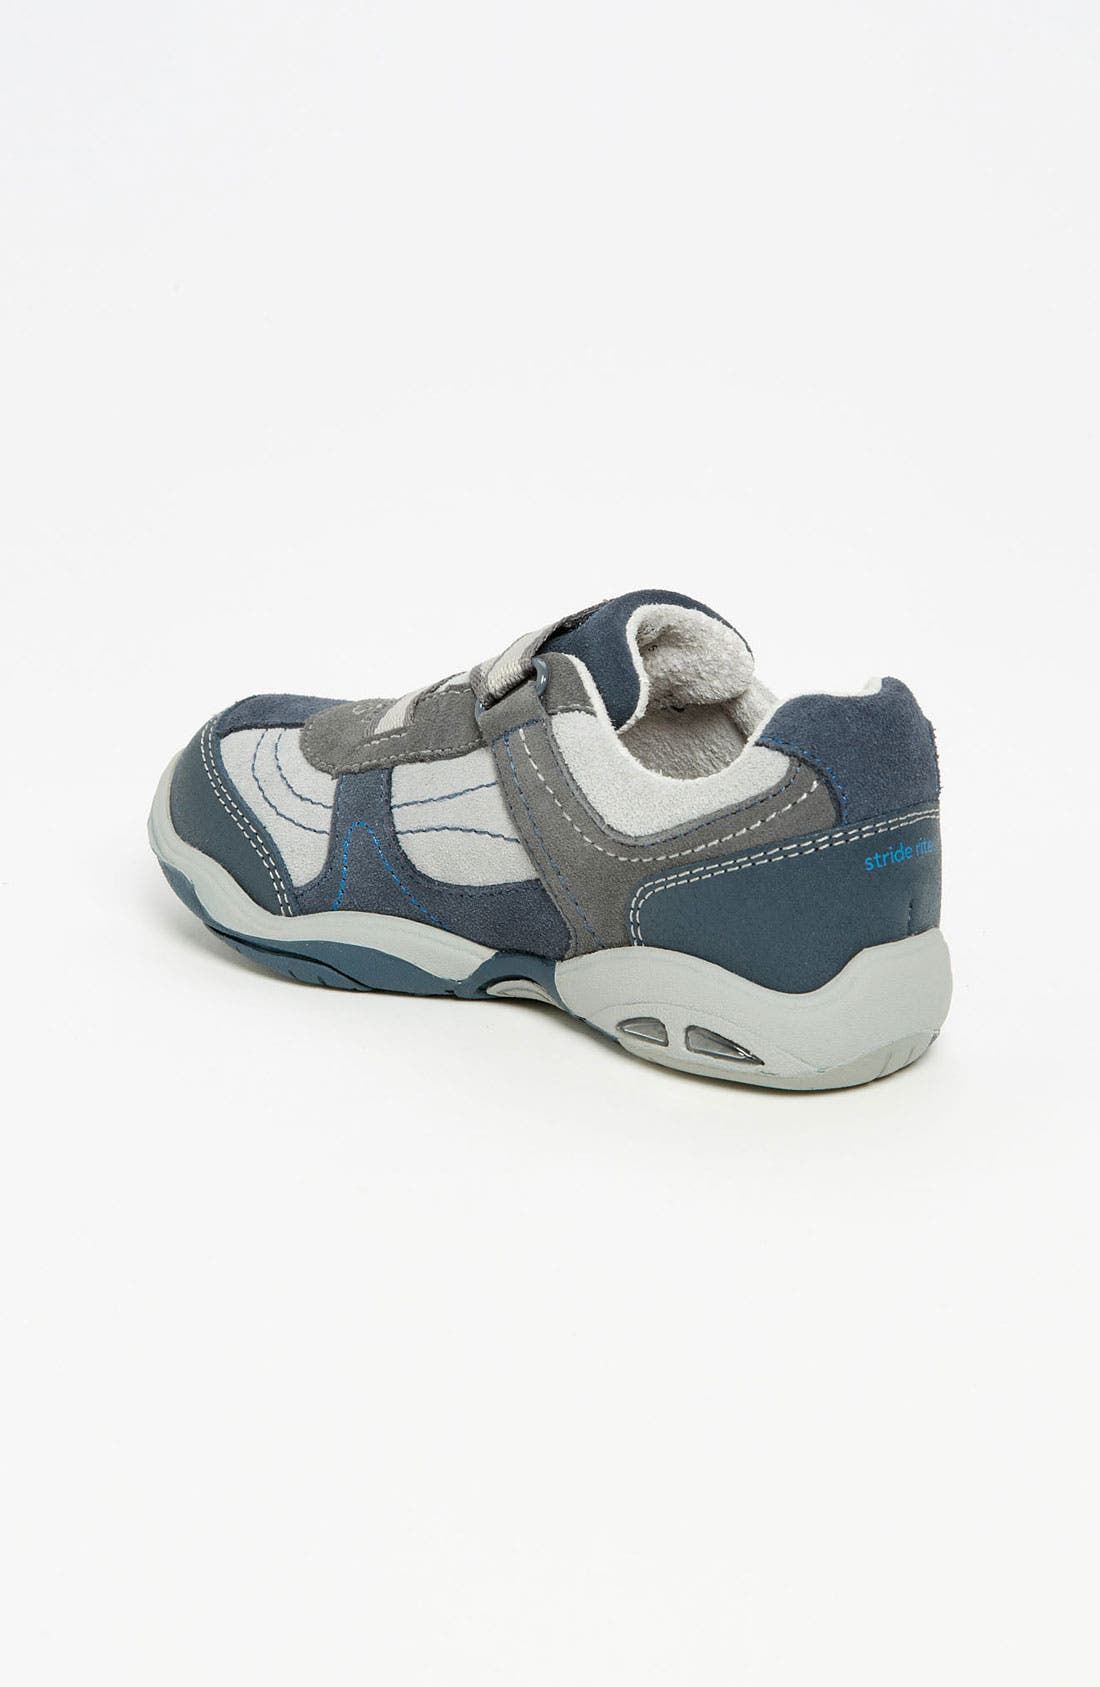 Alternate Image 2  - Stride Rite 'Chad' Sneaker (Toddler & Little Kid)